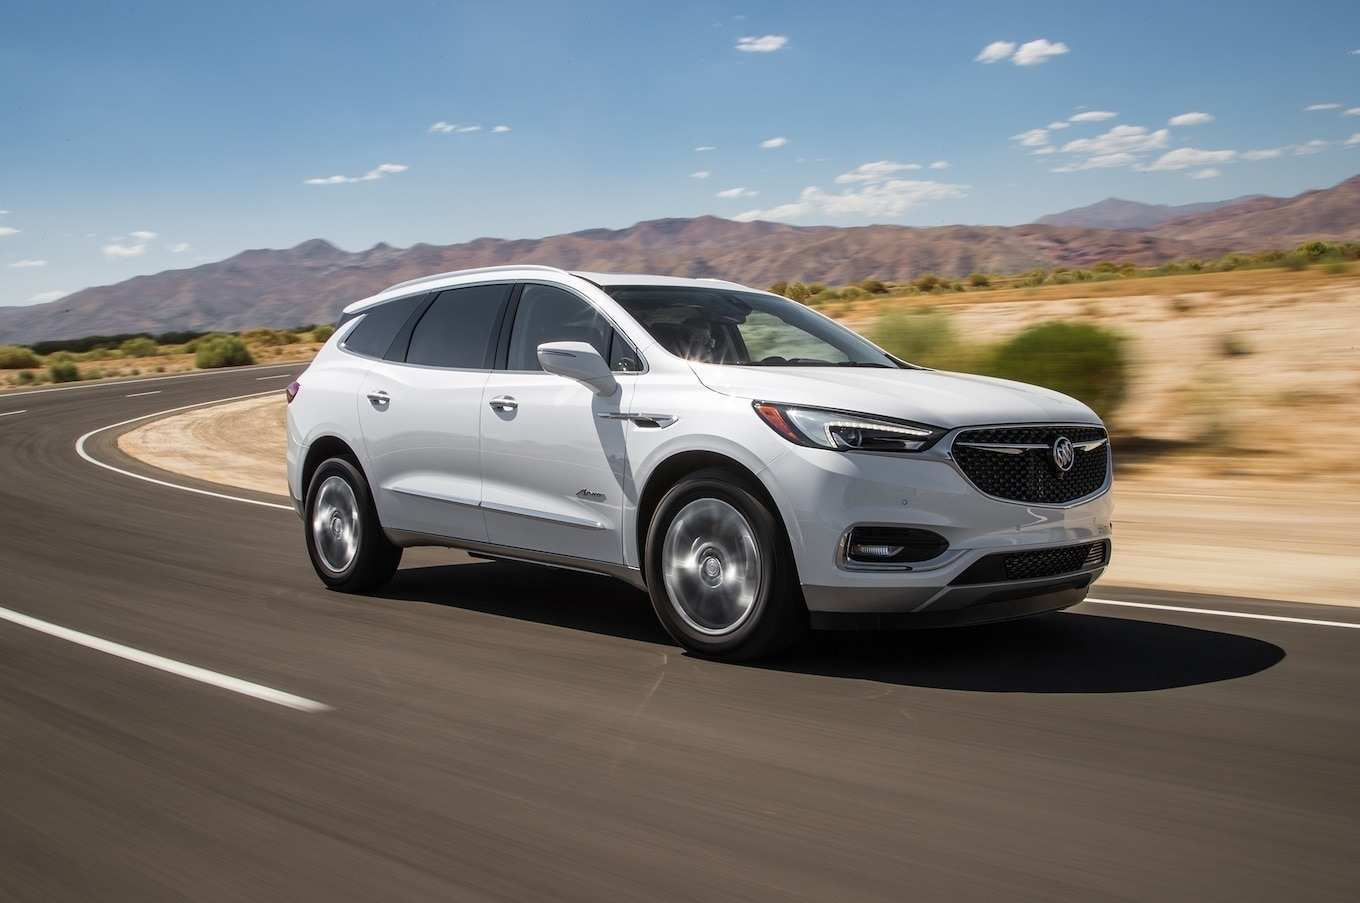 40 New 2019 Buick Enclave Spy Photos Ratings